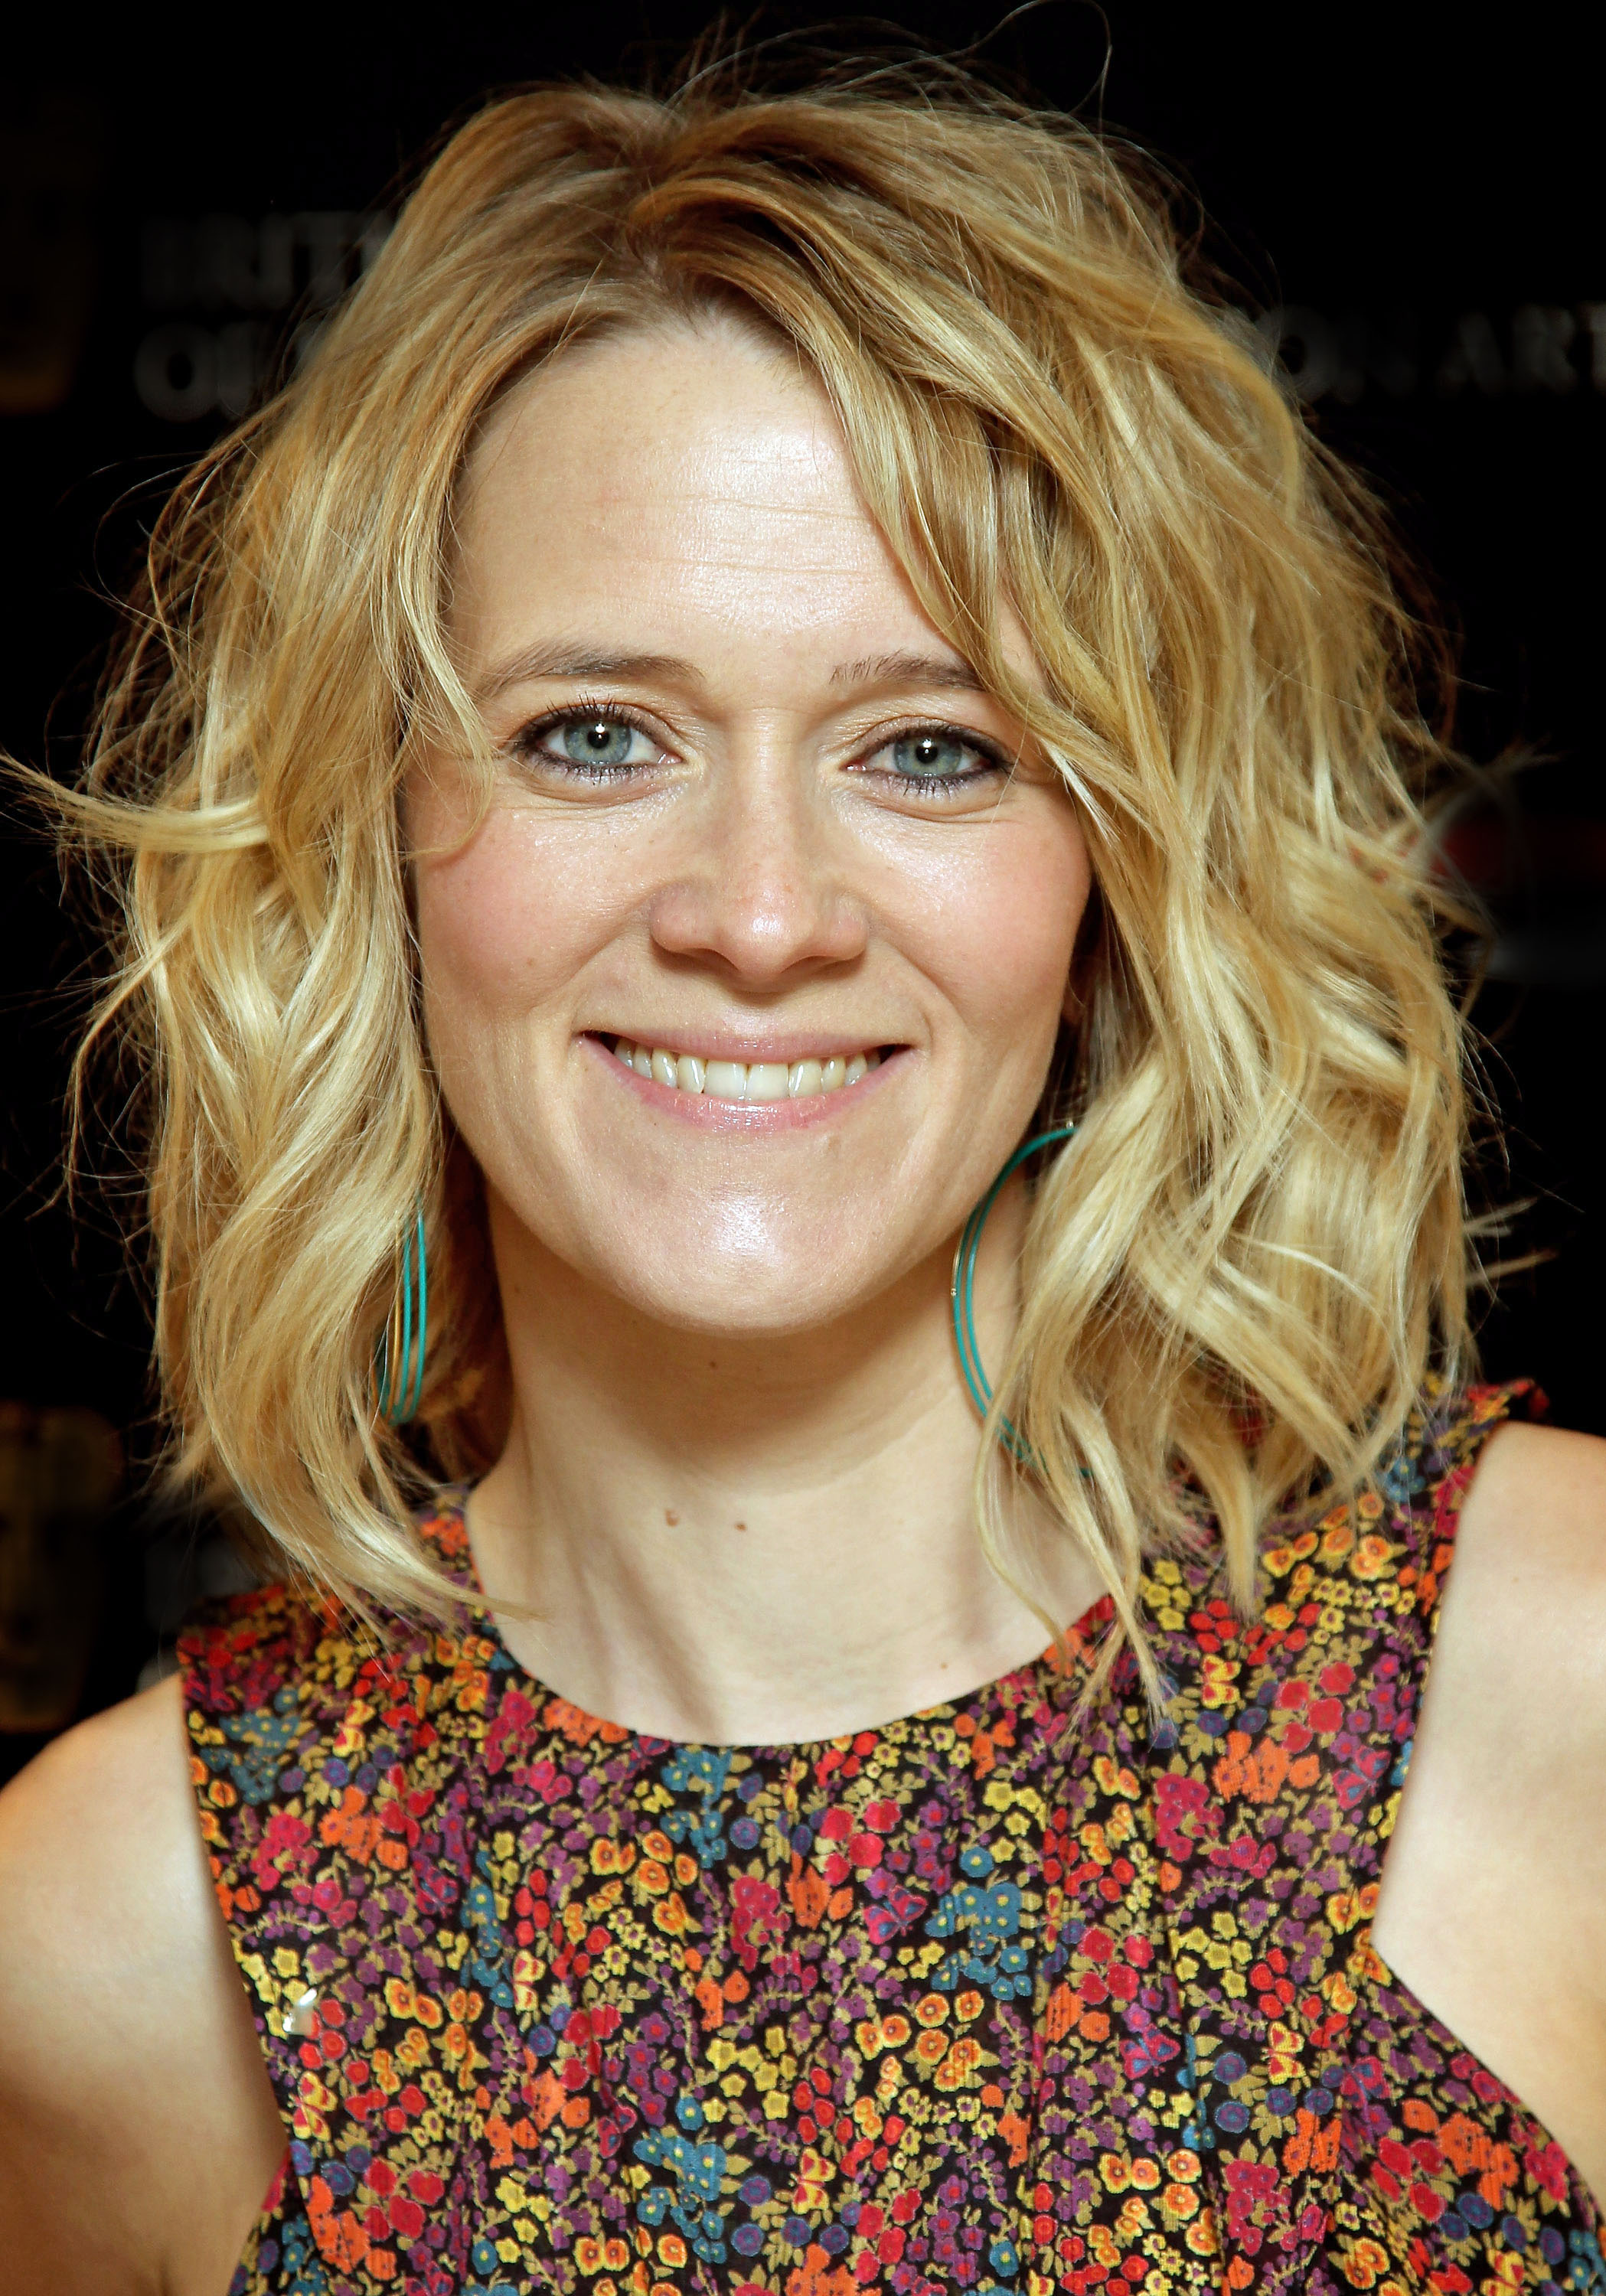 Pictures Edith Bowman nude photos 2019